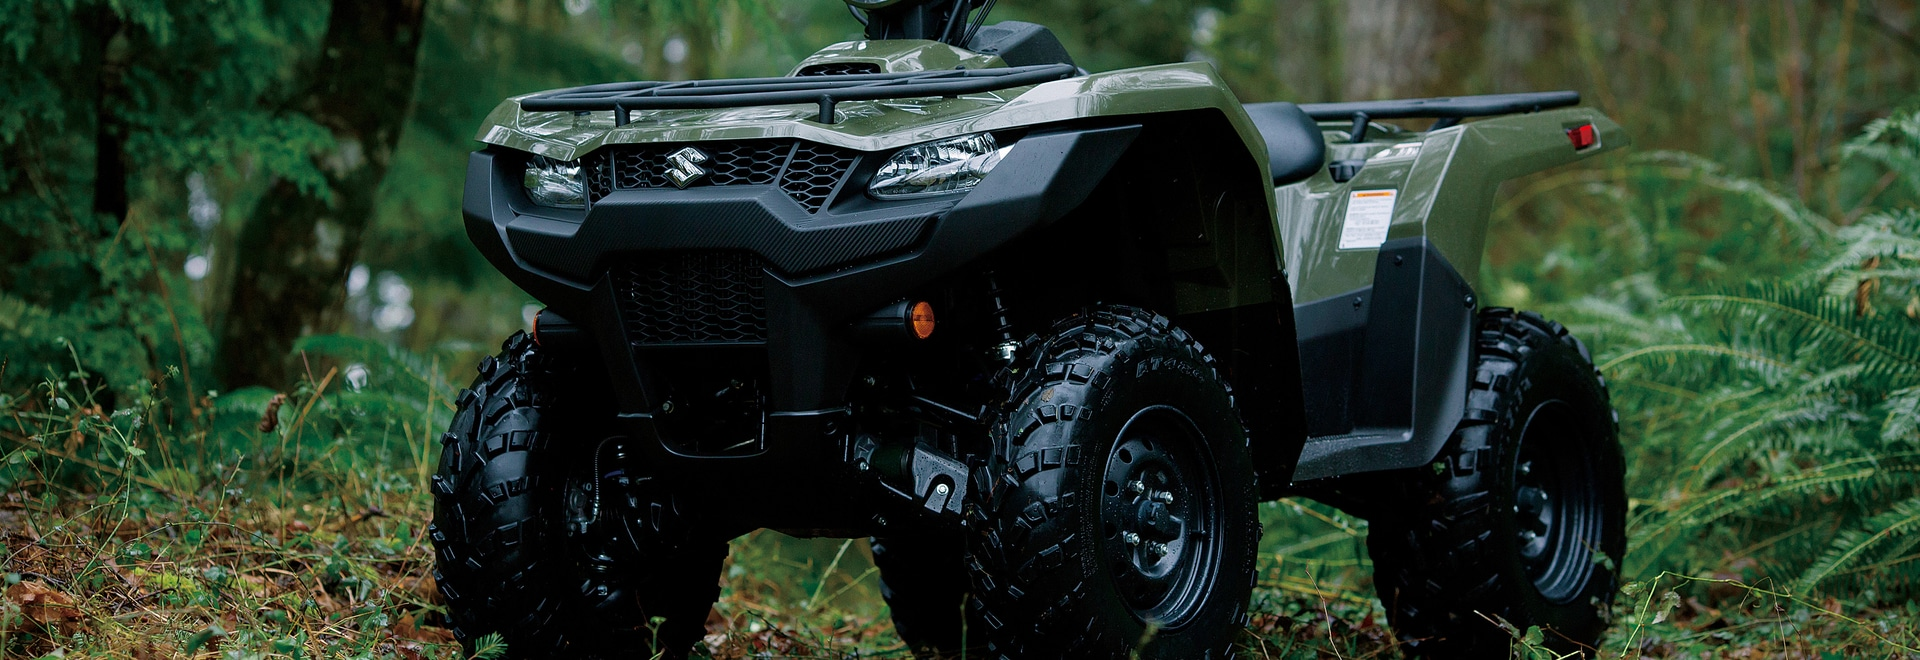 Suzuki recently launched four new KingQuad ATVs.